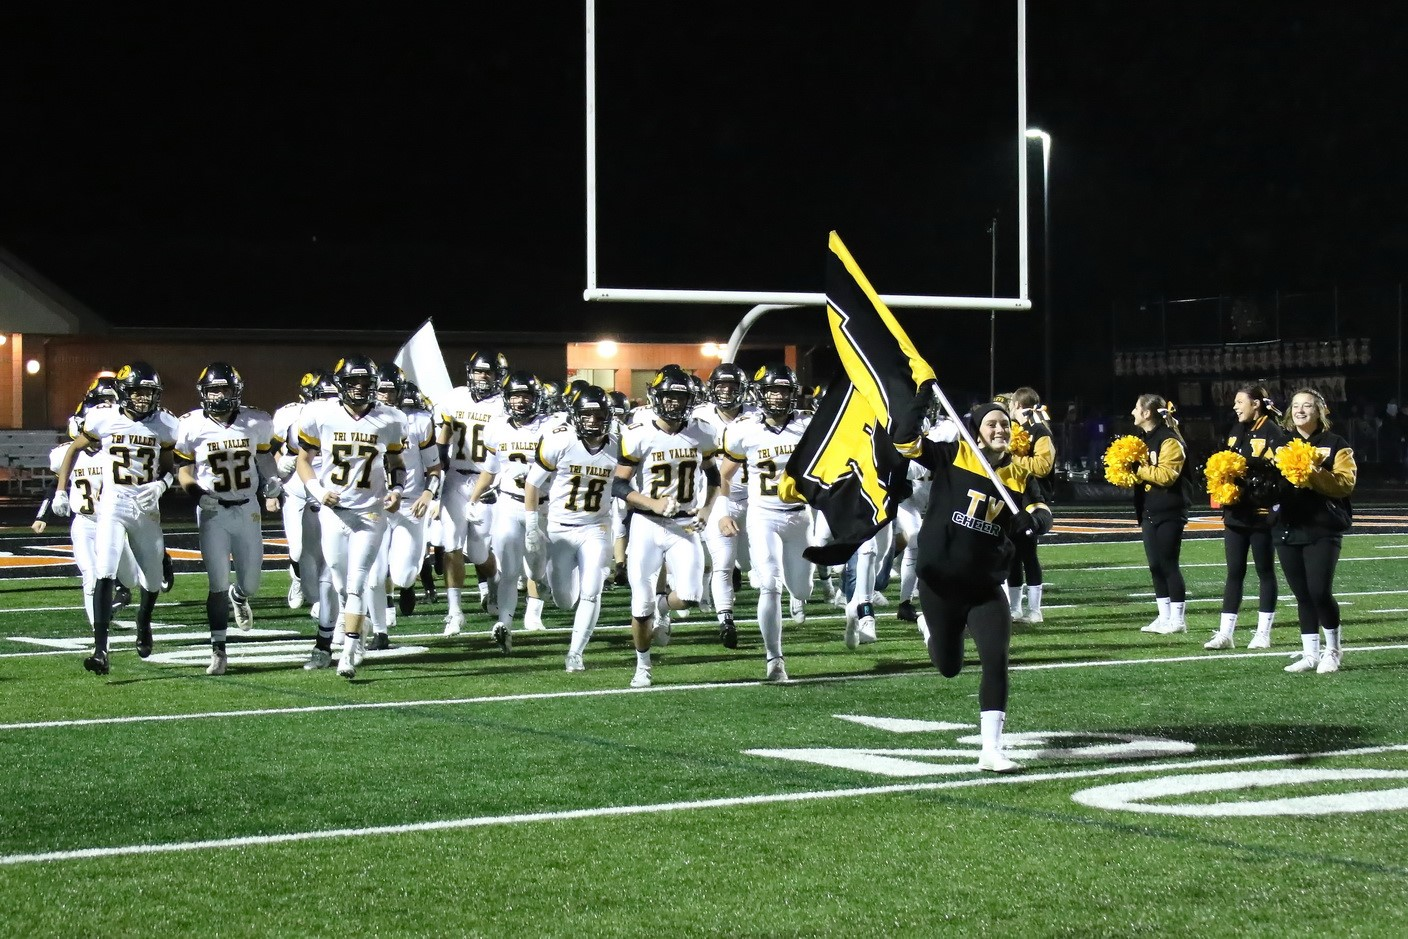 2019 Football Reserved Seat Ticket Sales Information